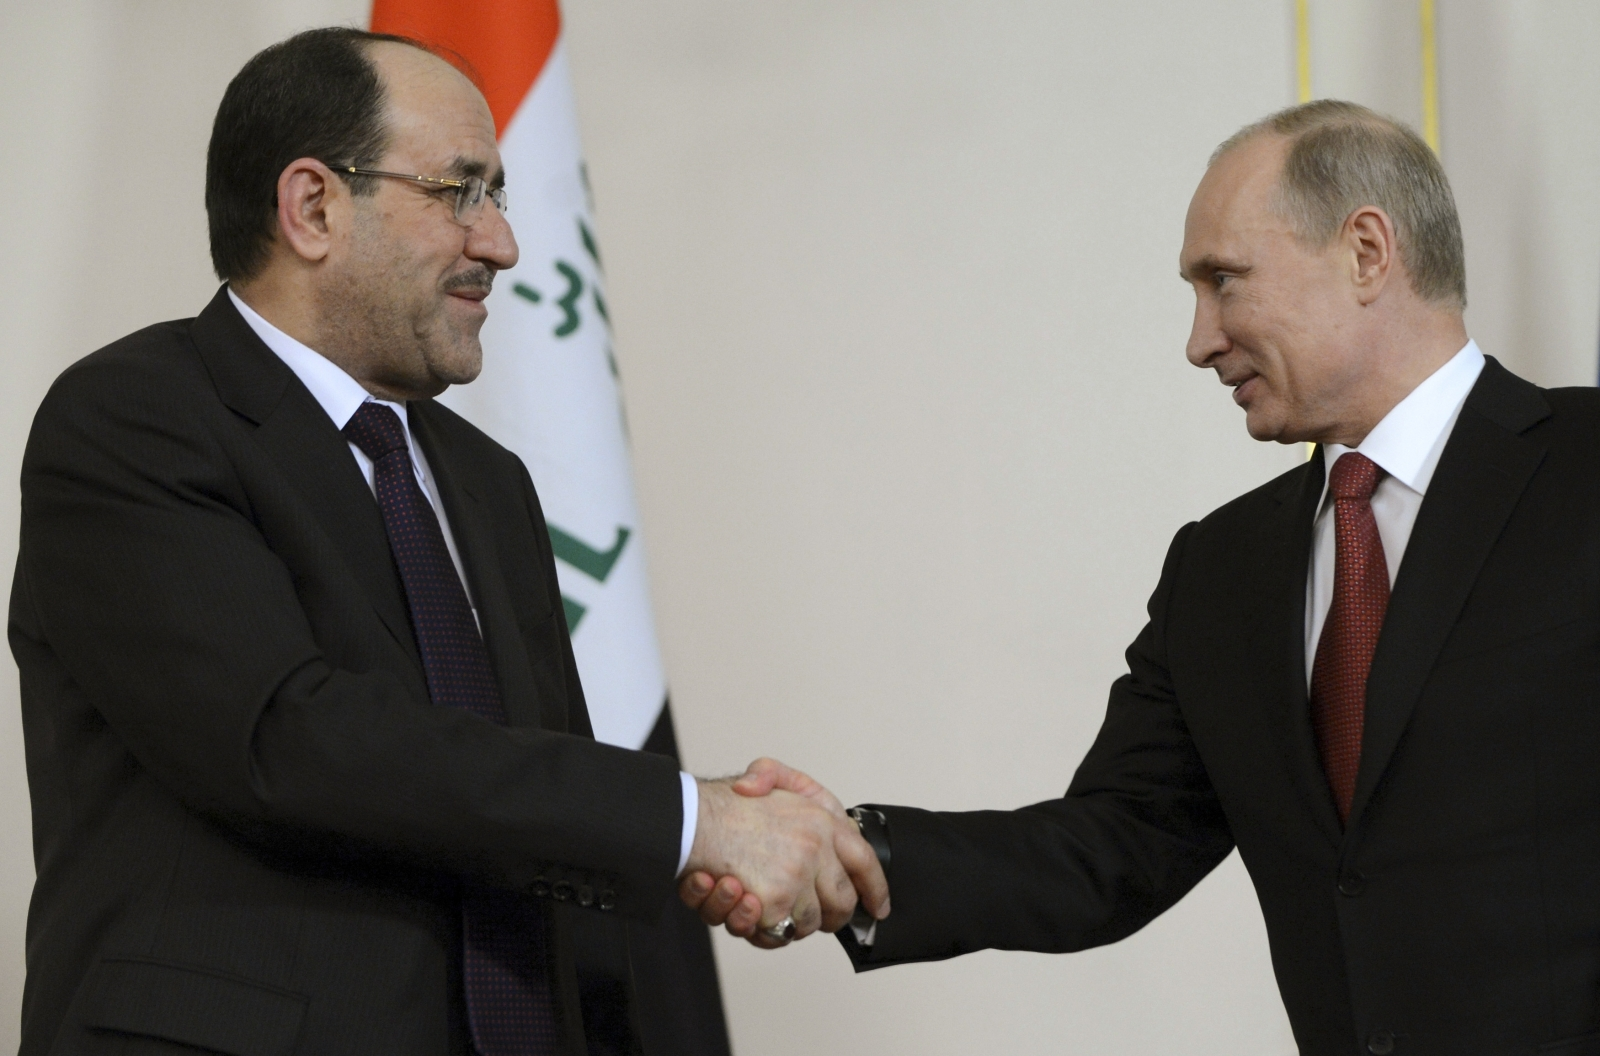 Iraqi, Syrian crises can not be solved by military means alone - Maliki